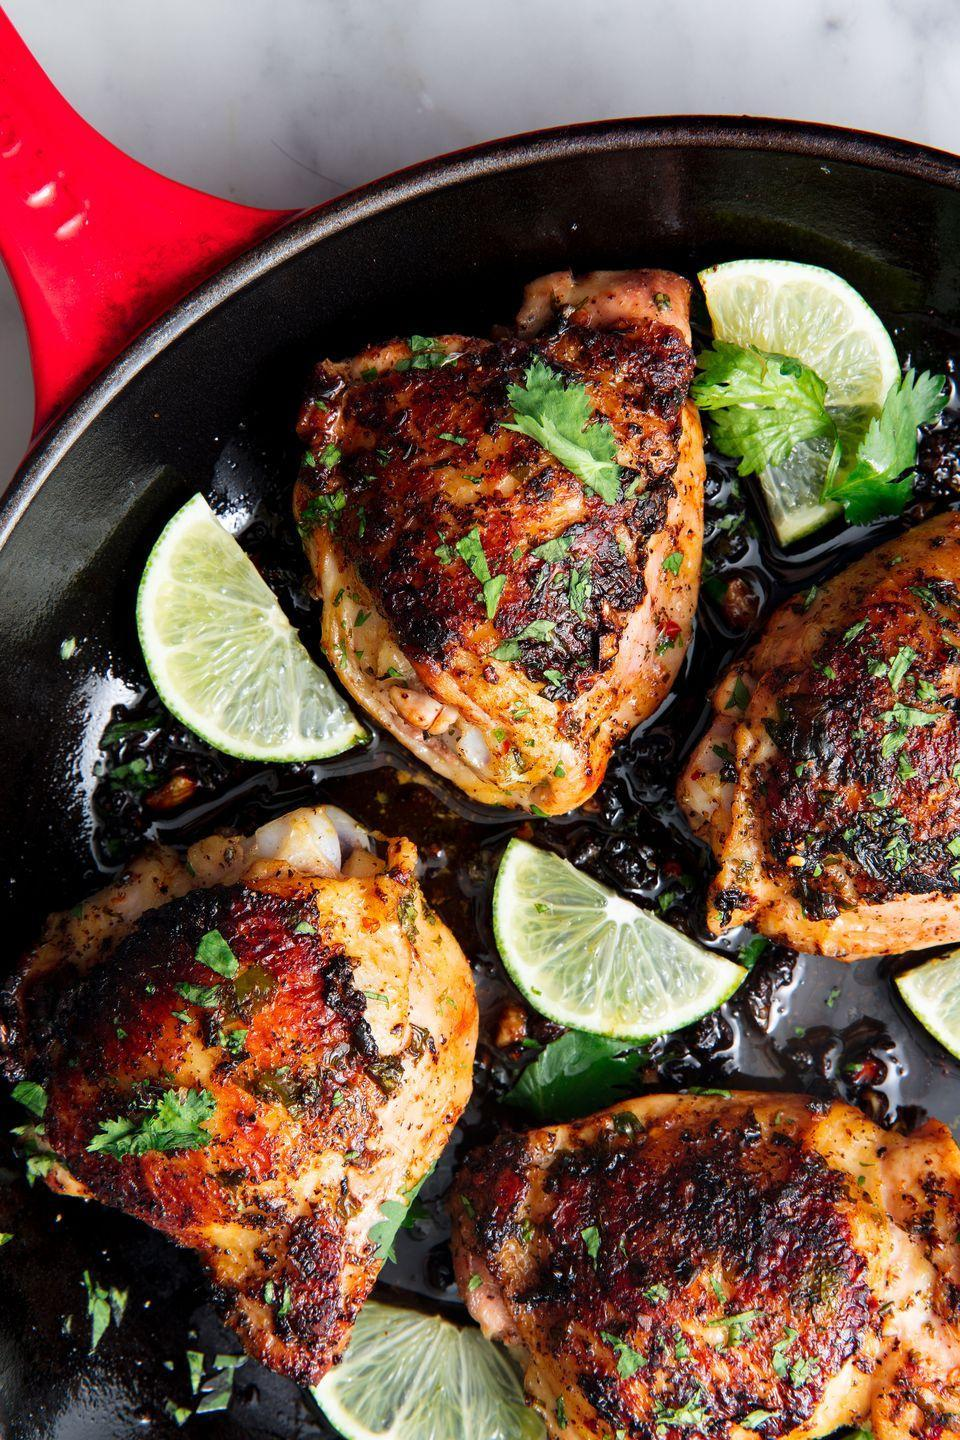 """<p>Majorly upgrade chicken breasts with a zesty cilantro-lime marinade.</p><p>Get the recipe from <a href=""""https://www.delish.com/cooking/recipe-ideas/a48247/cilantro-lime-chicken-recipe/"""" rel=""""nofollow noopener"""" target=""""_blank"""" data-ylk=""""slk:Delish"""" class=""""link rapid-noclick-resp"""">Delish</a>.</p>"""